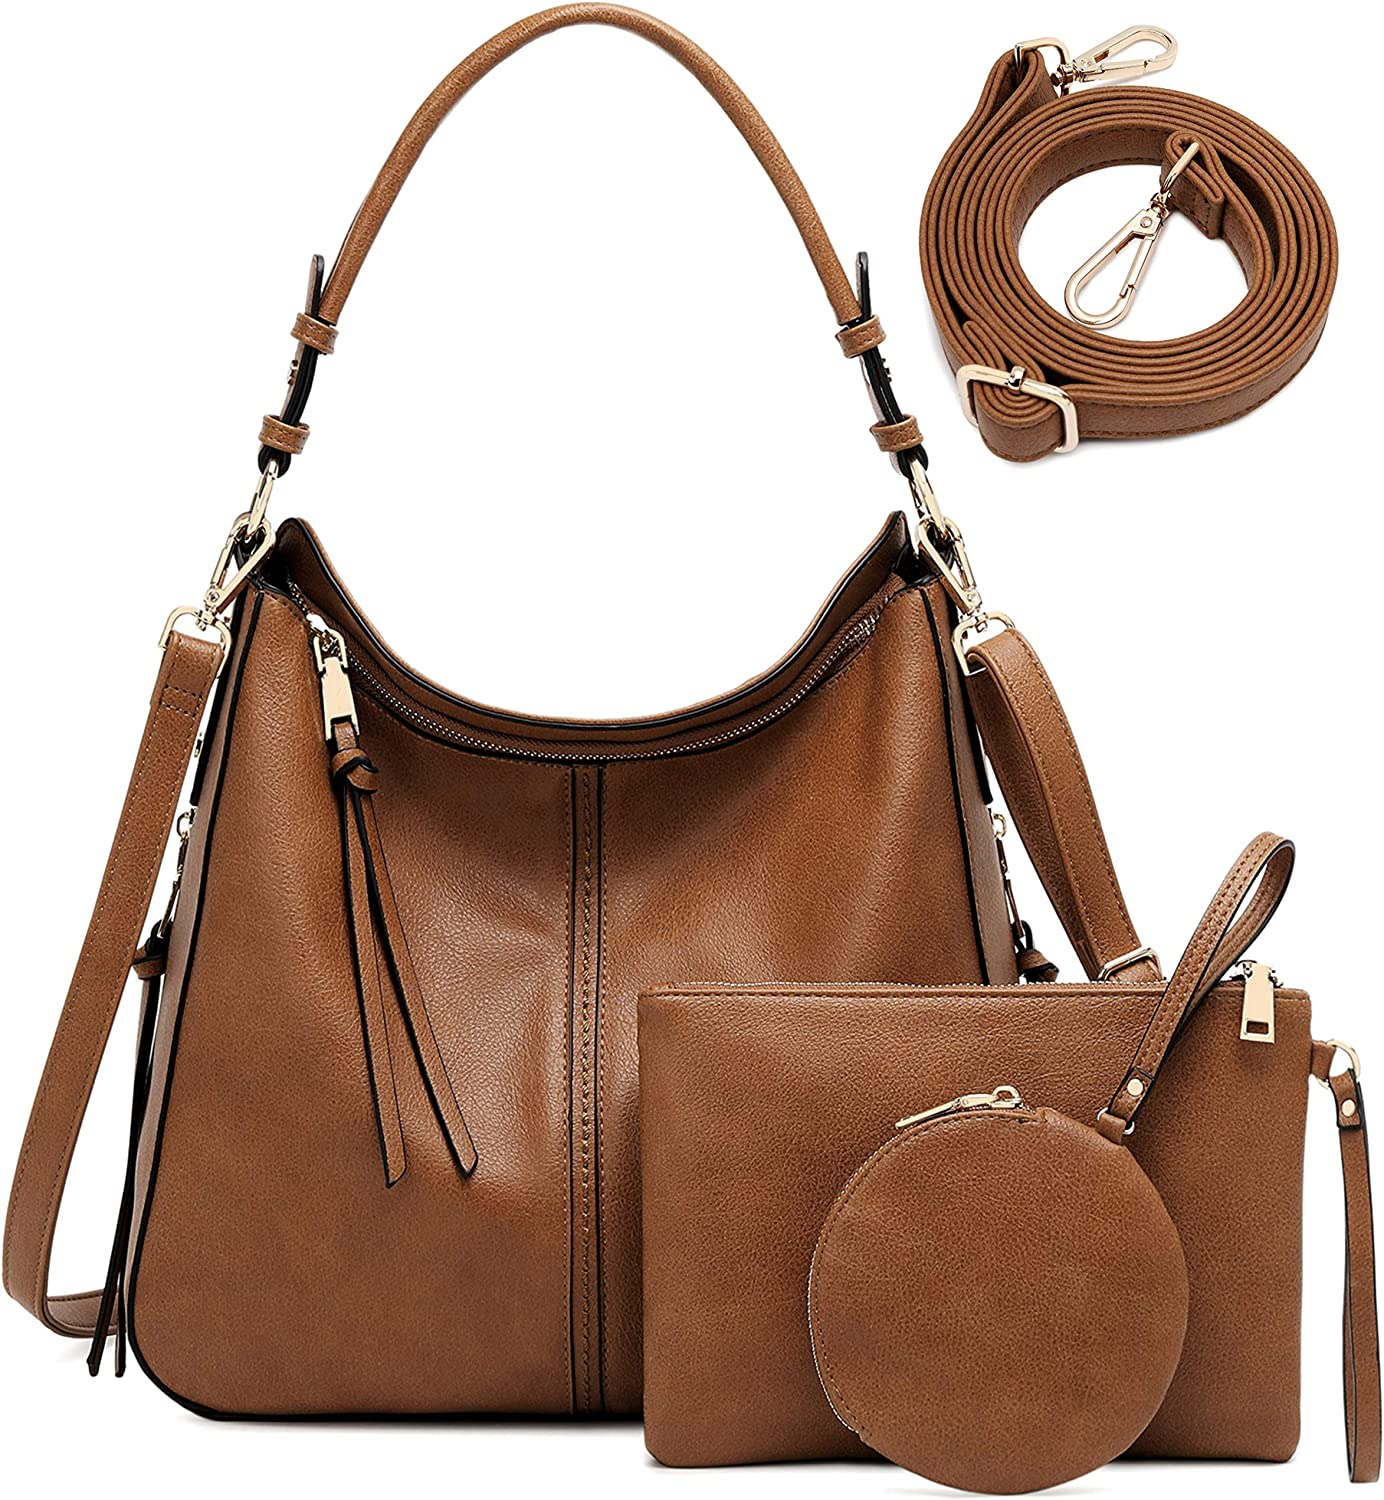 Lapsting Hobo Bags for Tulsa Mall Women OFFicial mail order Boho Handbags Ladies Purse Shoulder